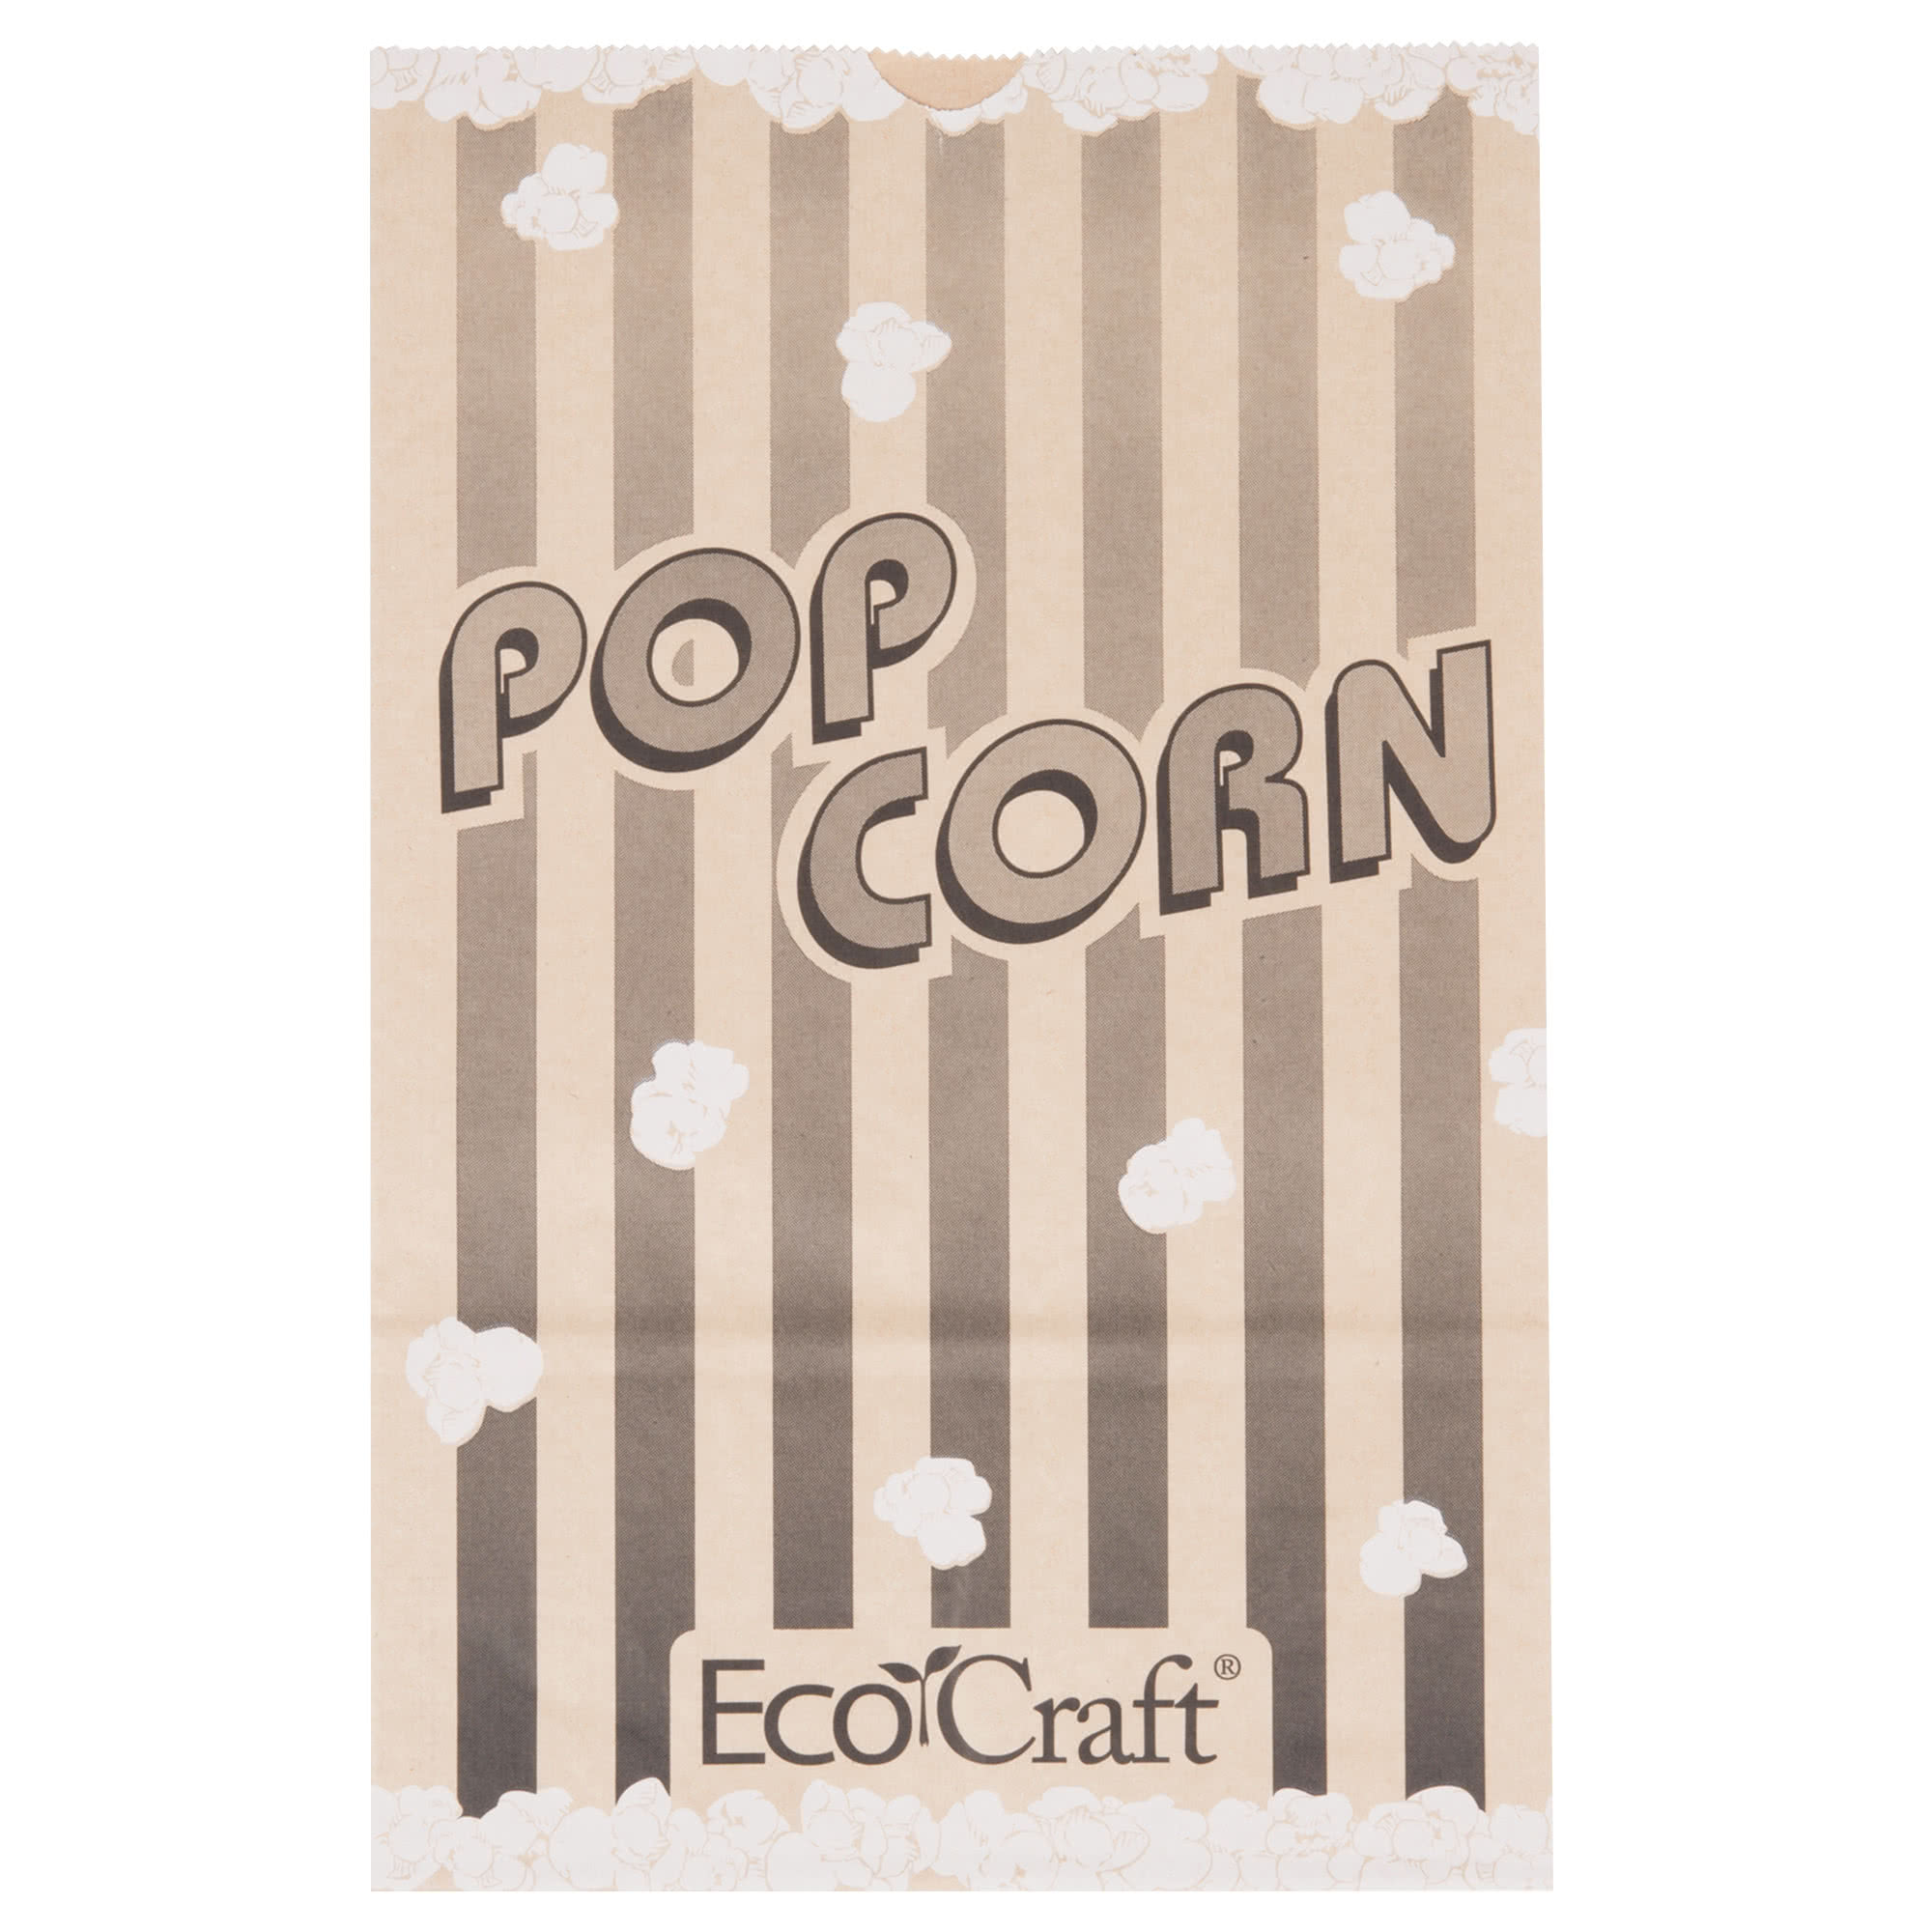 """Papercon 300614 7 1 2"""" x 3 1 2"""" x 11 3 4"""" 170 oz. EcoCraft Popcorn Bag 250... by TableTop King"""